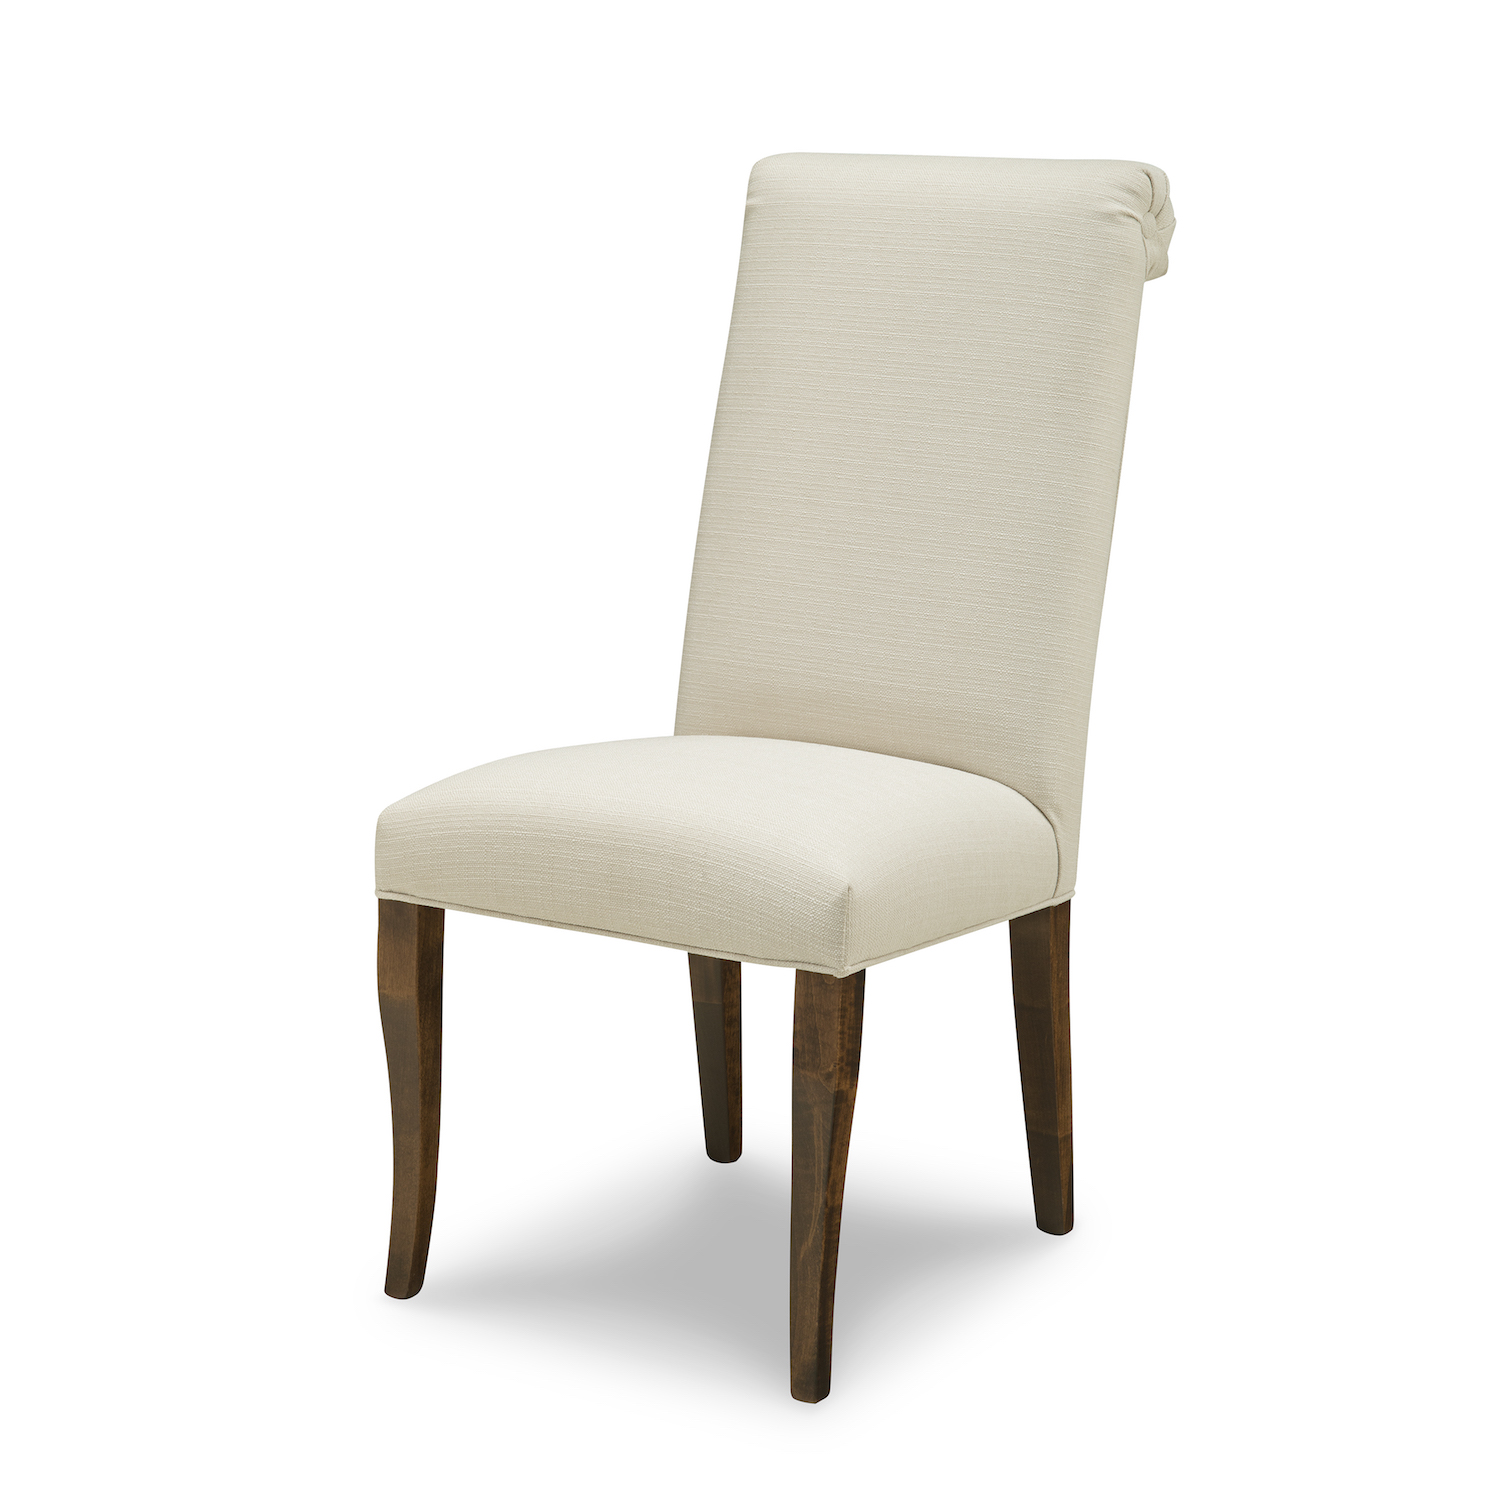 Rollback_Chair_Front_Angled-2-1.jpg